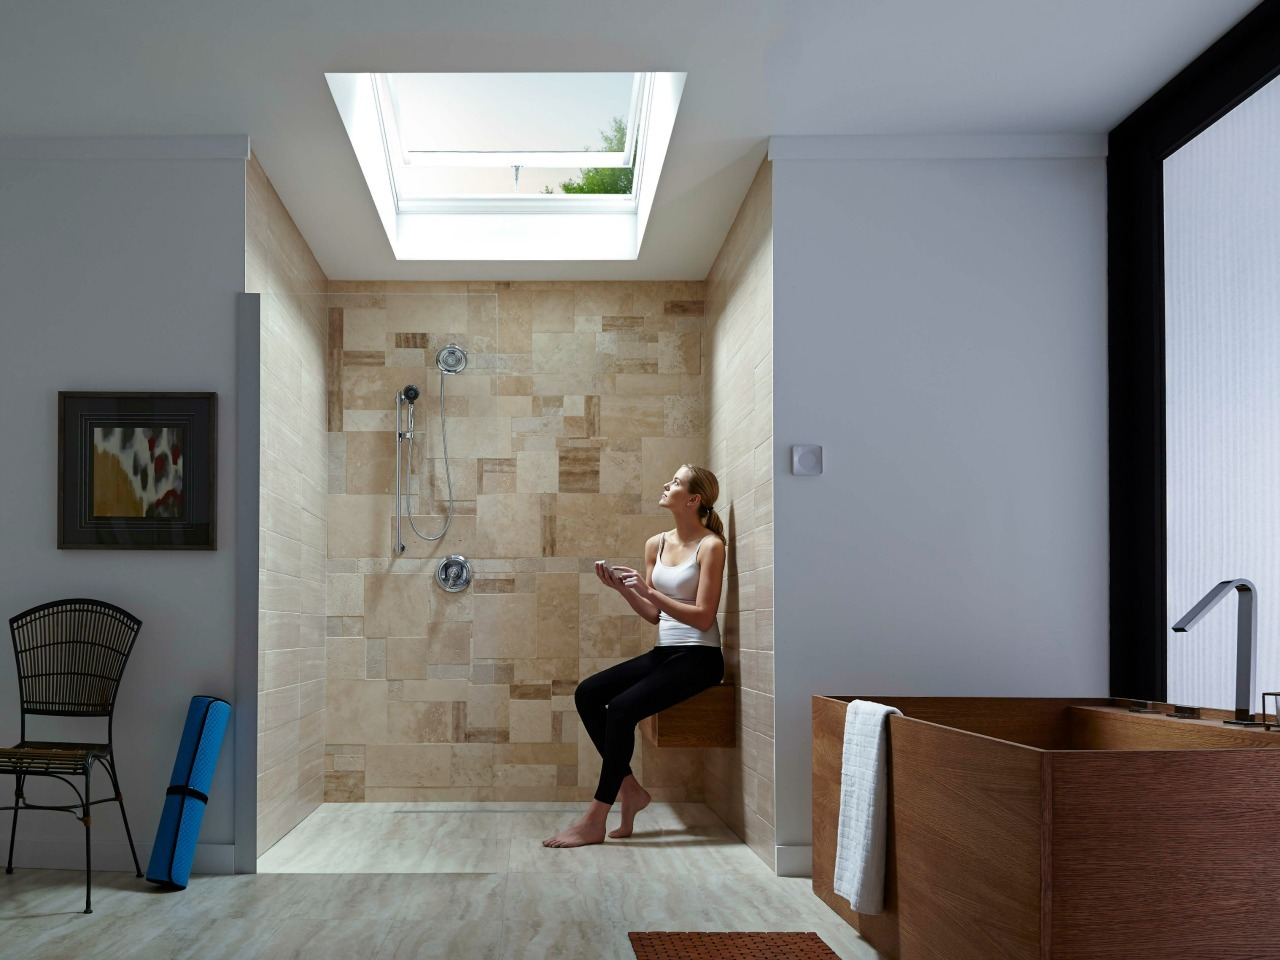 28 Bathroom Skylight Venting Wooden Tub 0839